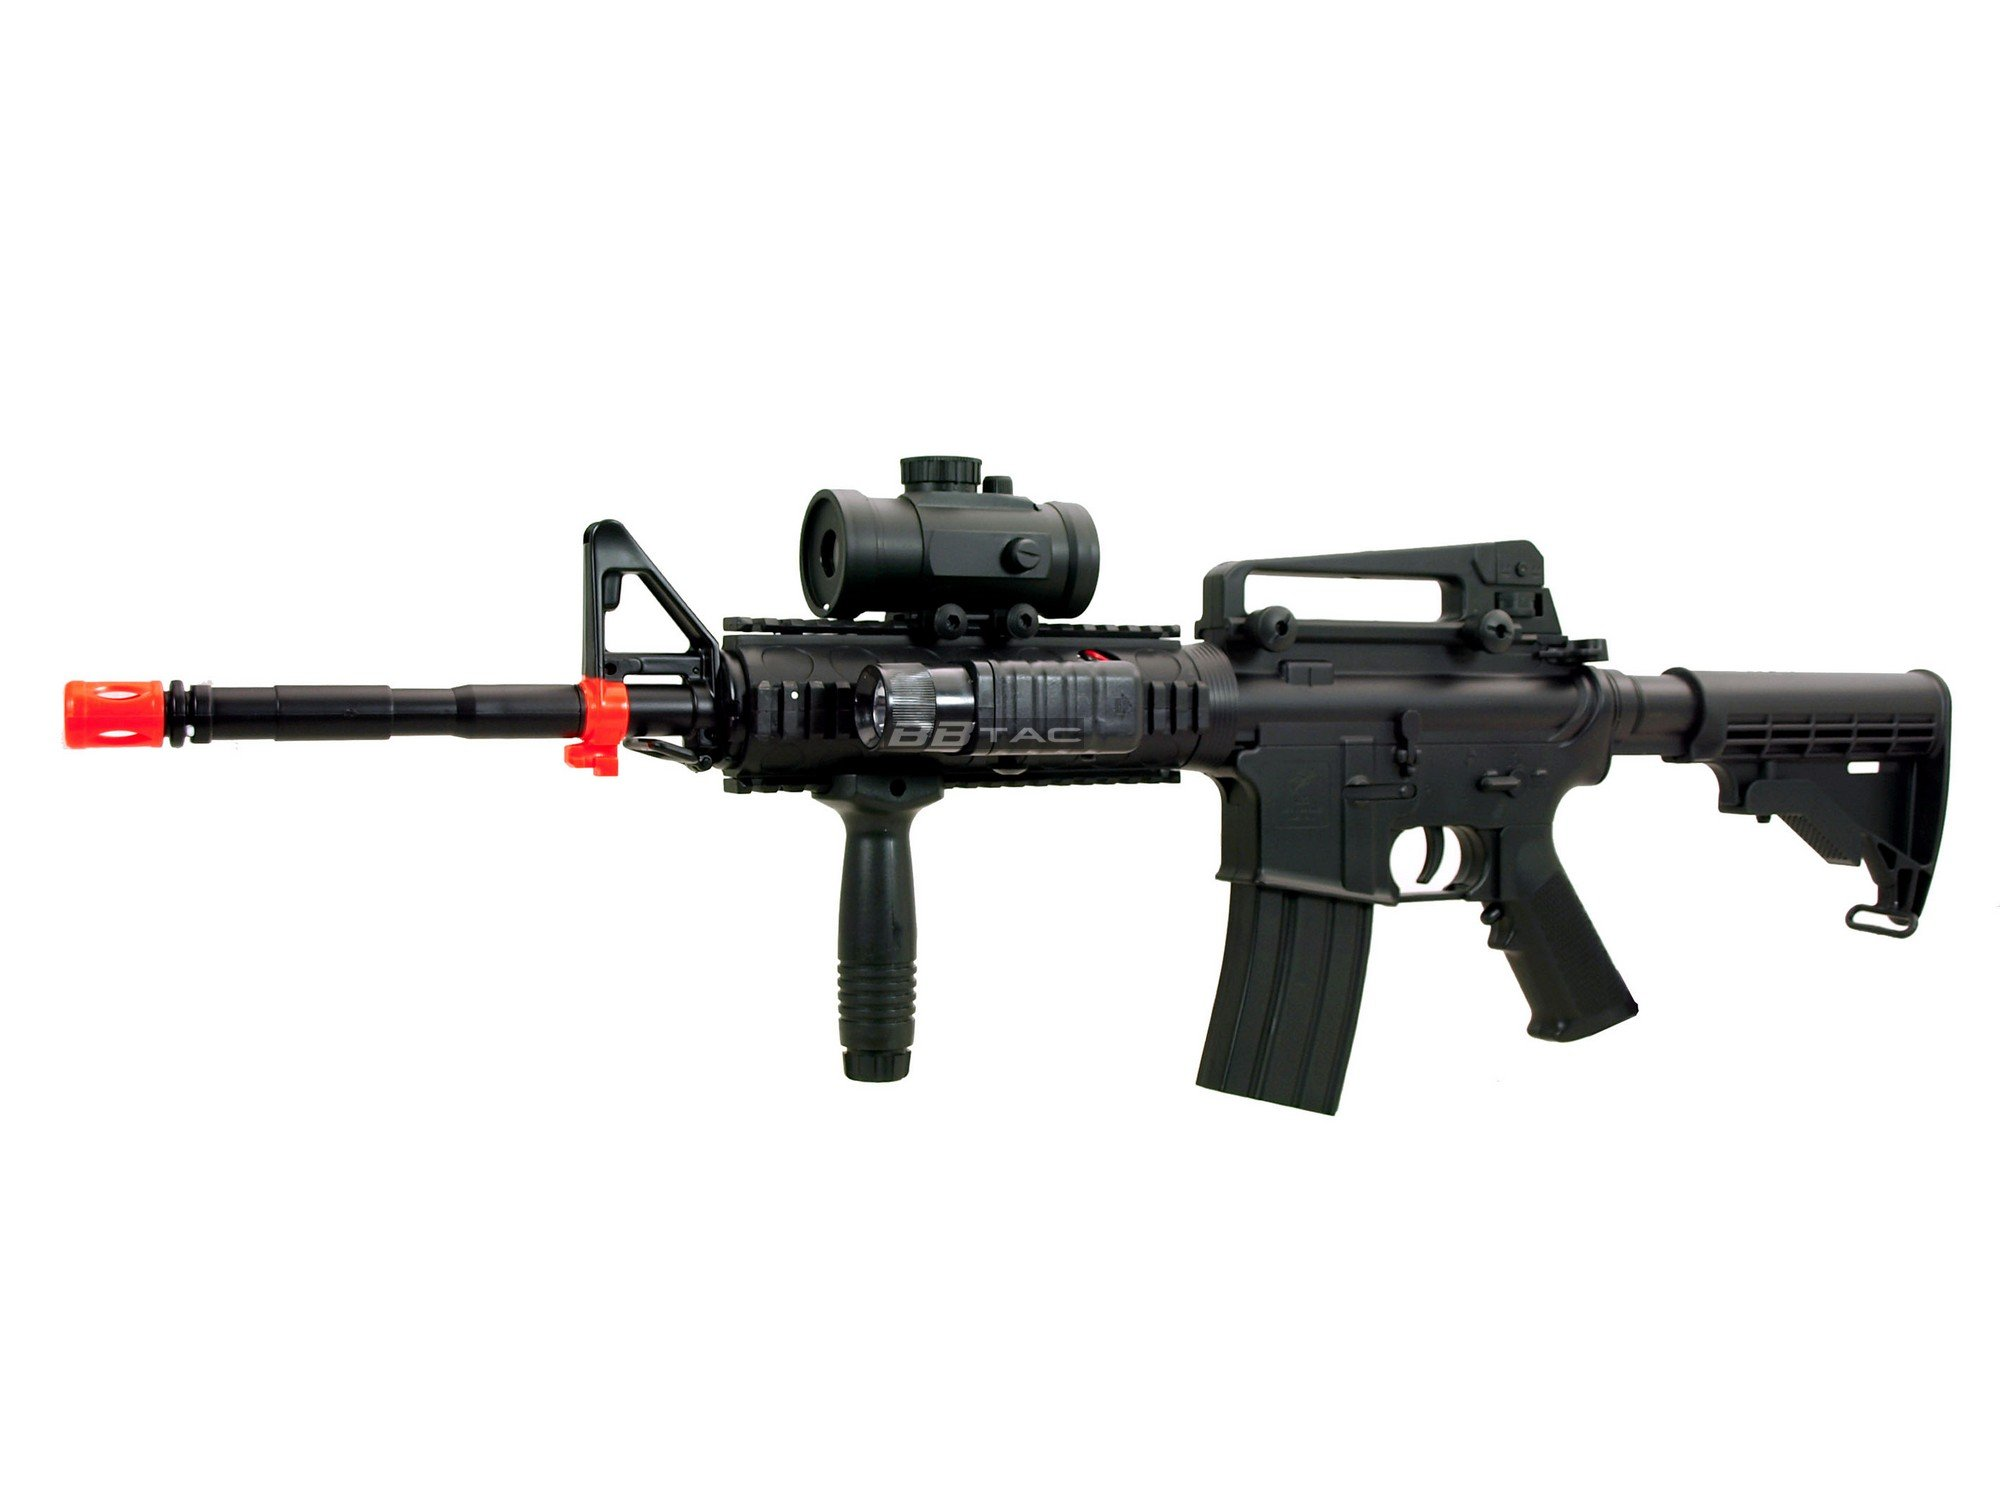 BBTac Airsoft Gun Package - Police Response Team Collection of 4 Airsoft Guns - Full Auto AEG Electric Rifle, Shotgun, SMG and Pistol, 4000 BB Pellets, Great for Starter Pack Game Play by BBTac (Image #2)